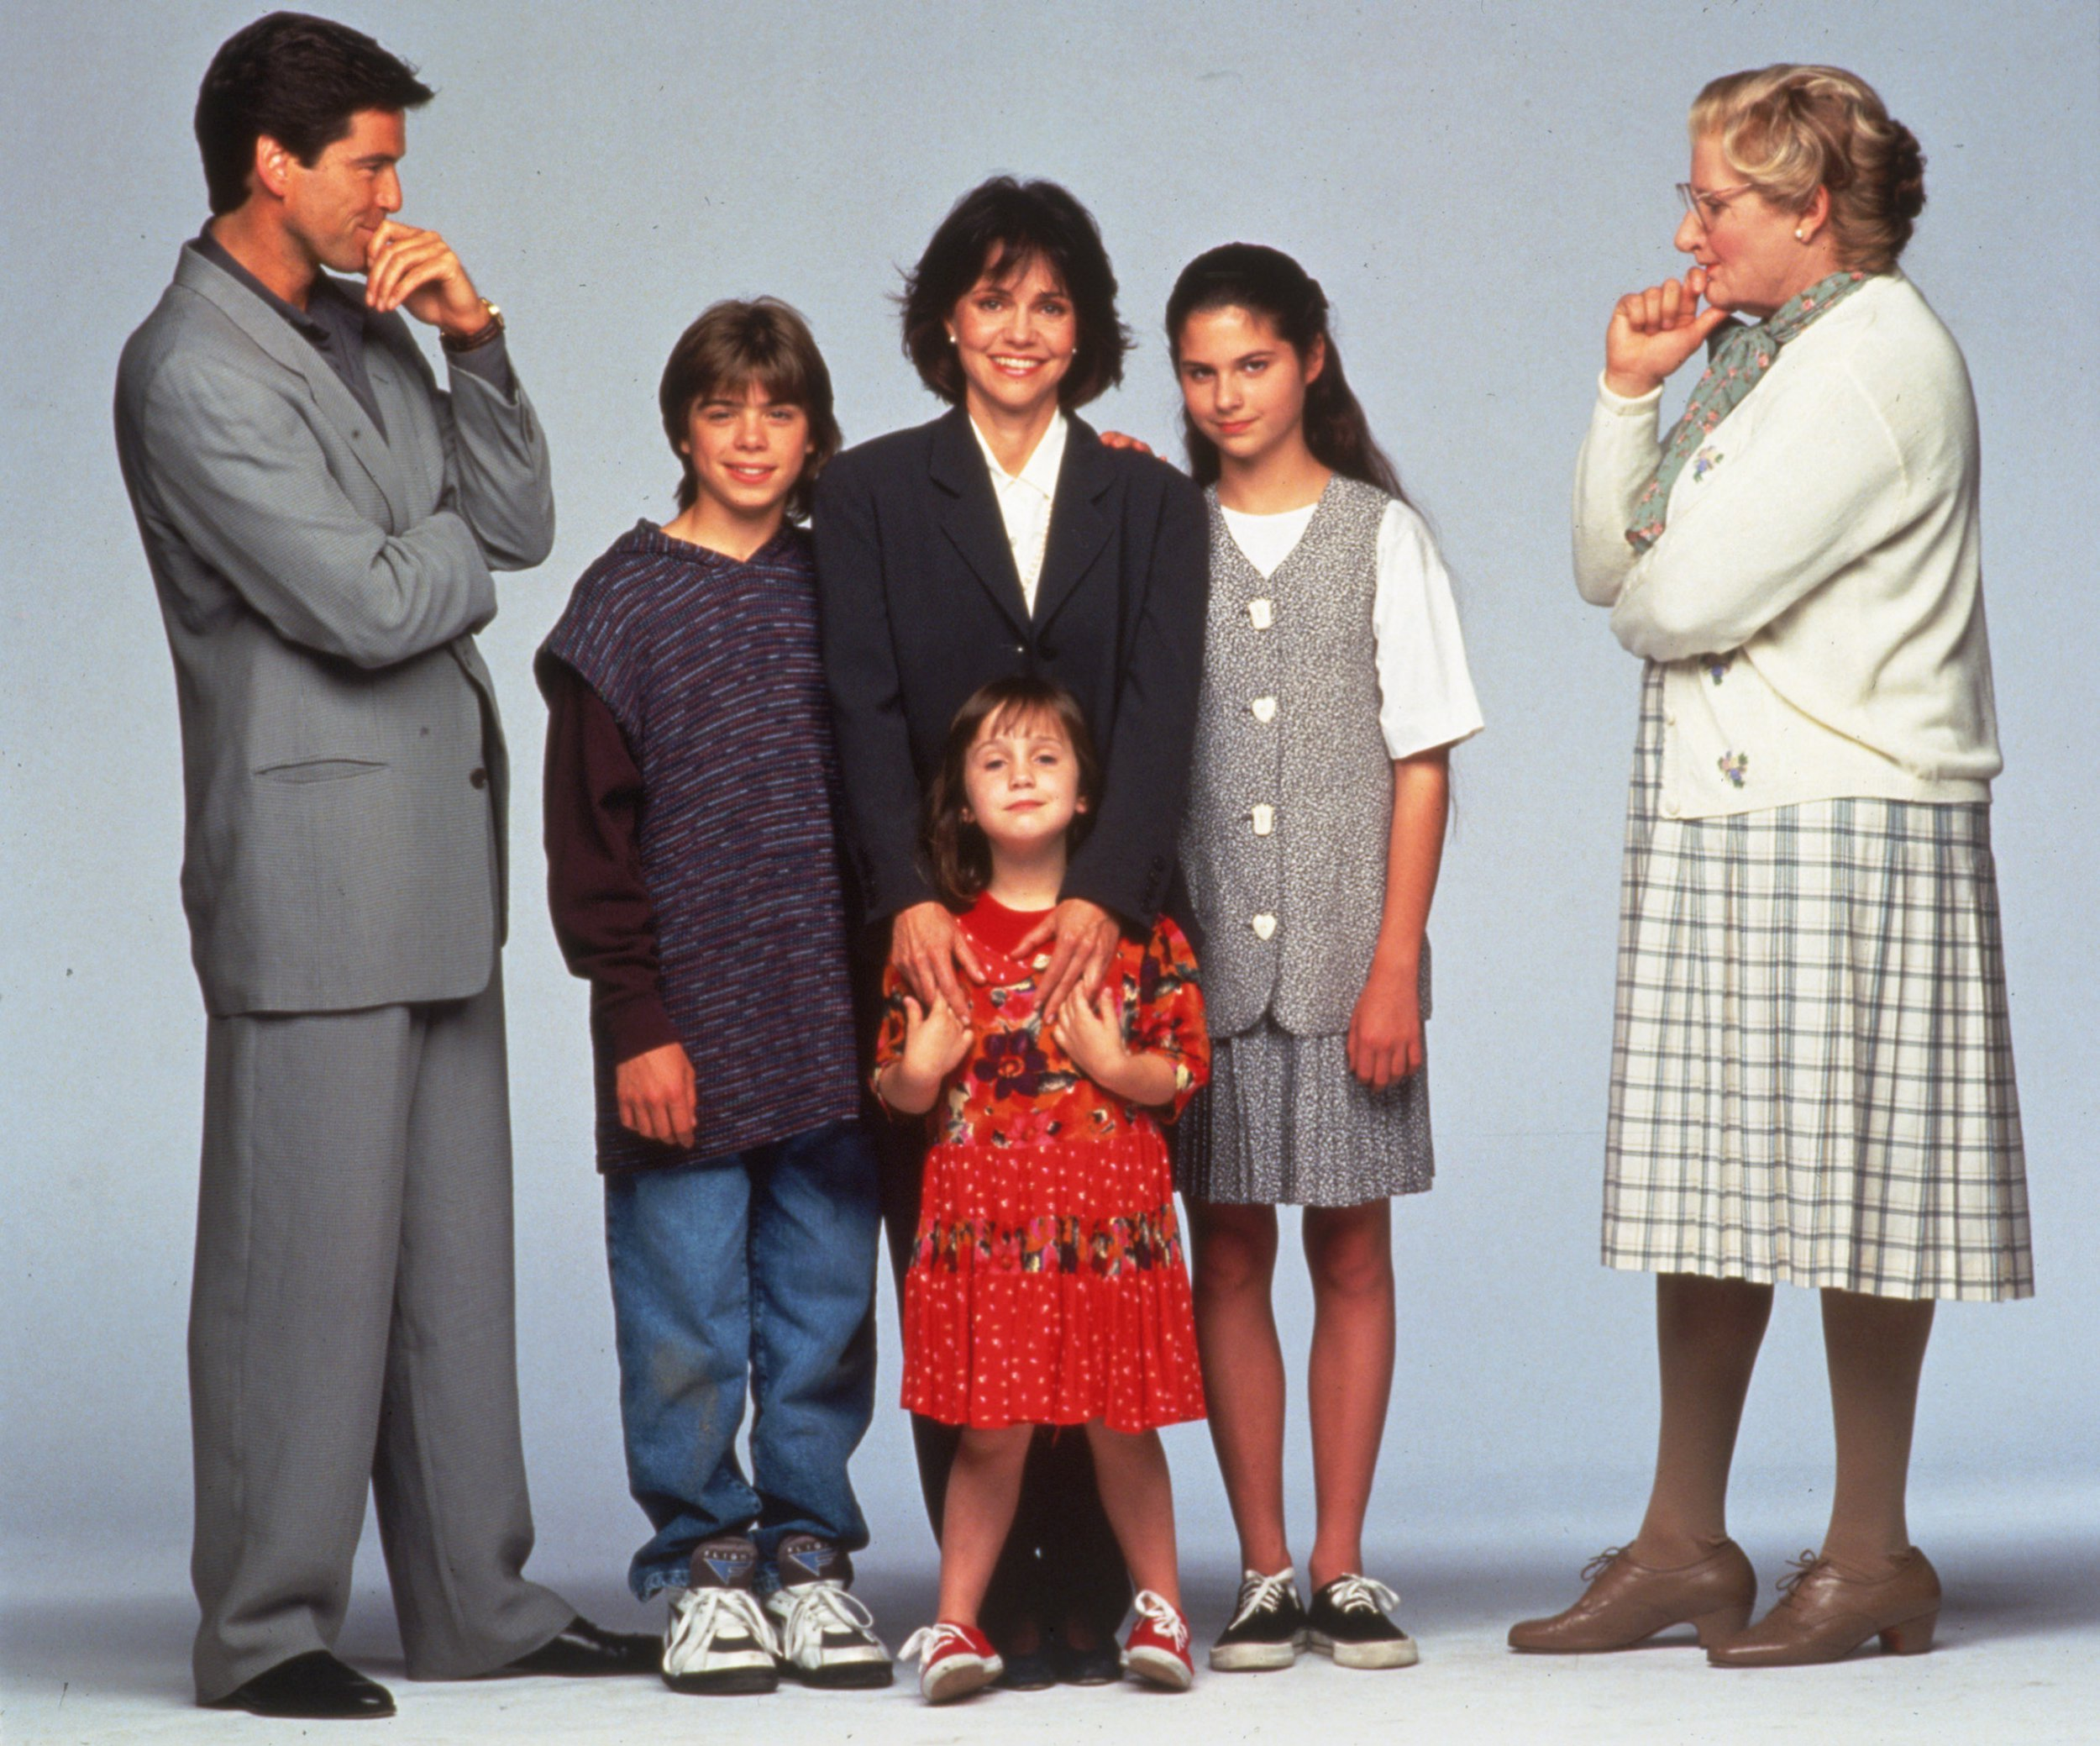 Editorial use only Mandatory Credit: Photo by SNAP/REX/Shutterstock (390905ce) FILM STILLS OF 'MRS. DOUBTFIRE' WITH 1993, PIERCE BROSNAN, CHRIS COLUMBUS, ENSEMBLE, SALLY FIELD, LISA JAKUB, MATTHEW LAWRENCE, ROBIN WILLIAMS, MARA WILSON IN 1993 VARIOUS